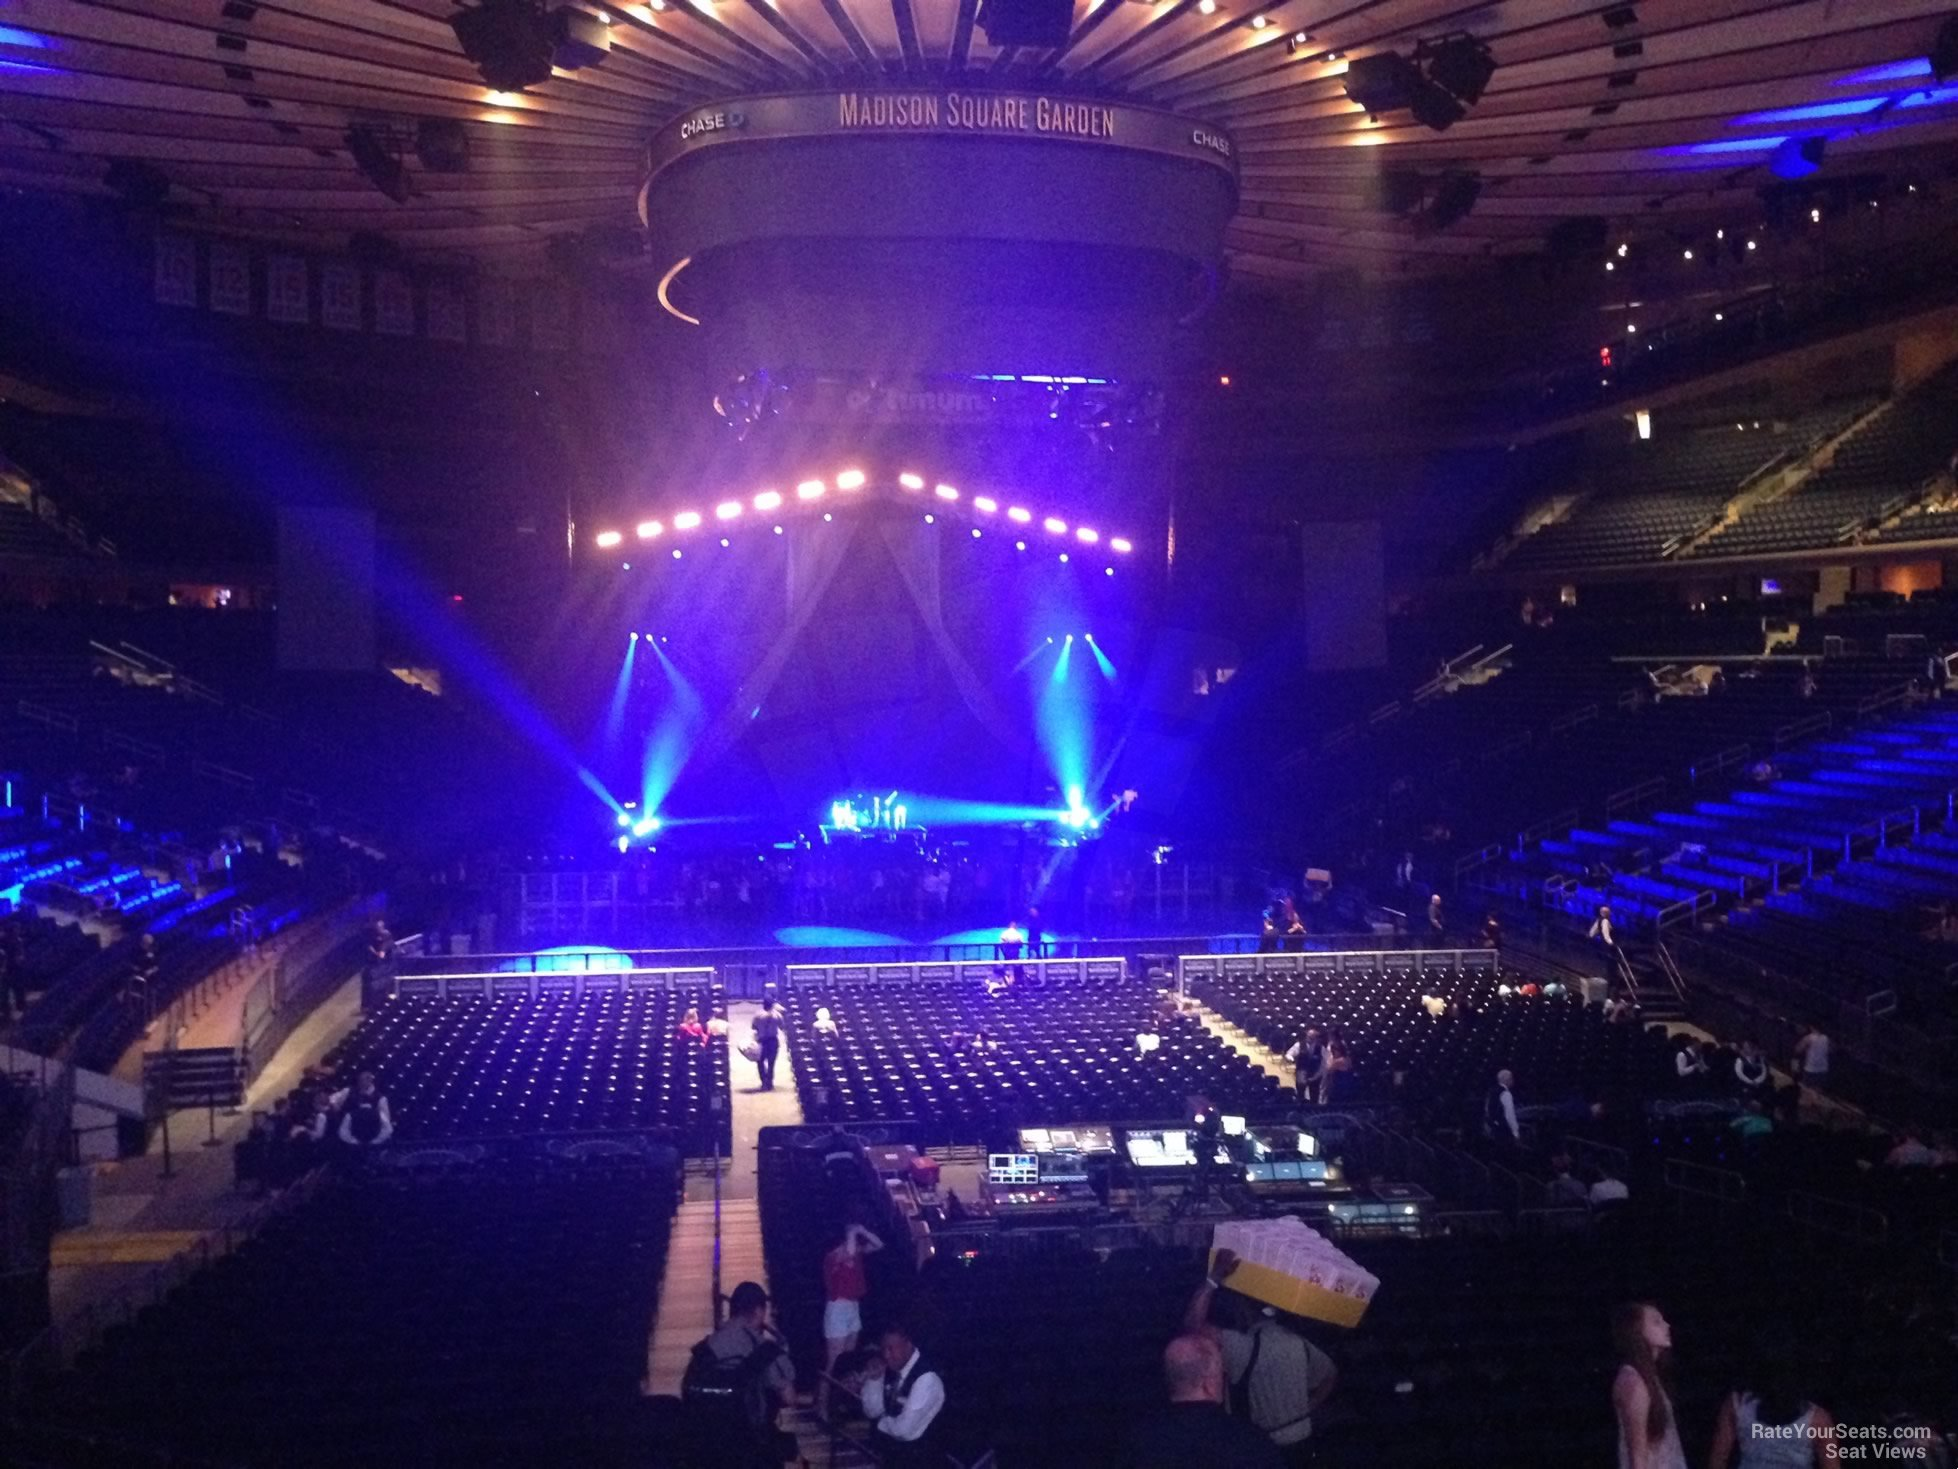 Madison Square Garden Section 101 Concert Seating